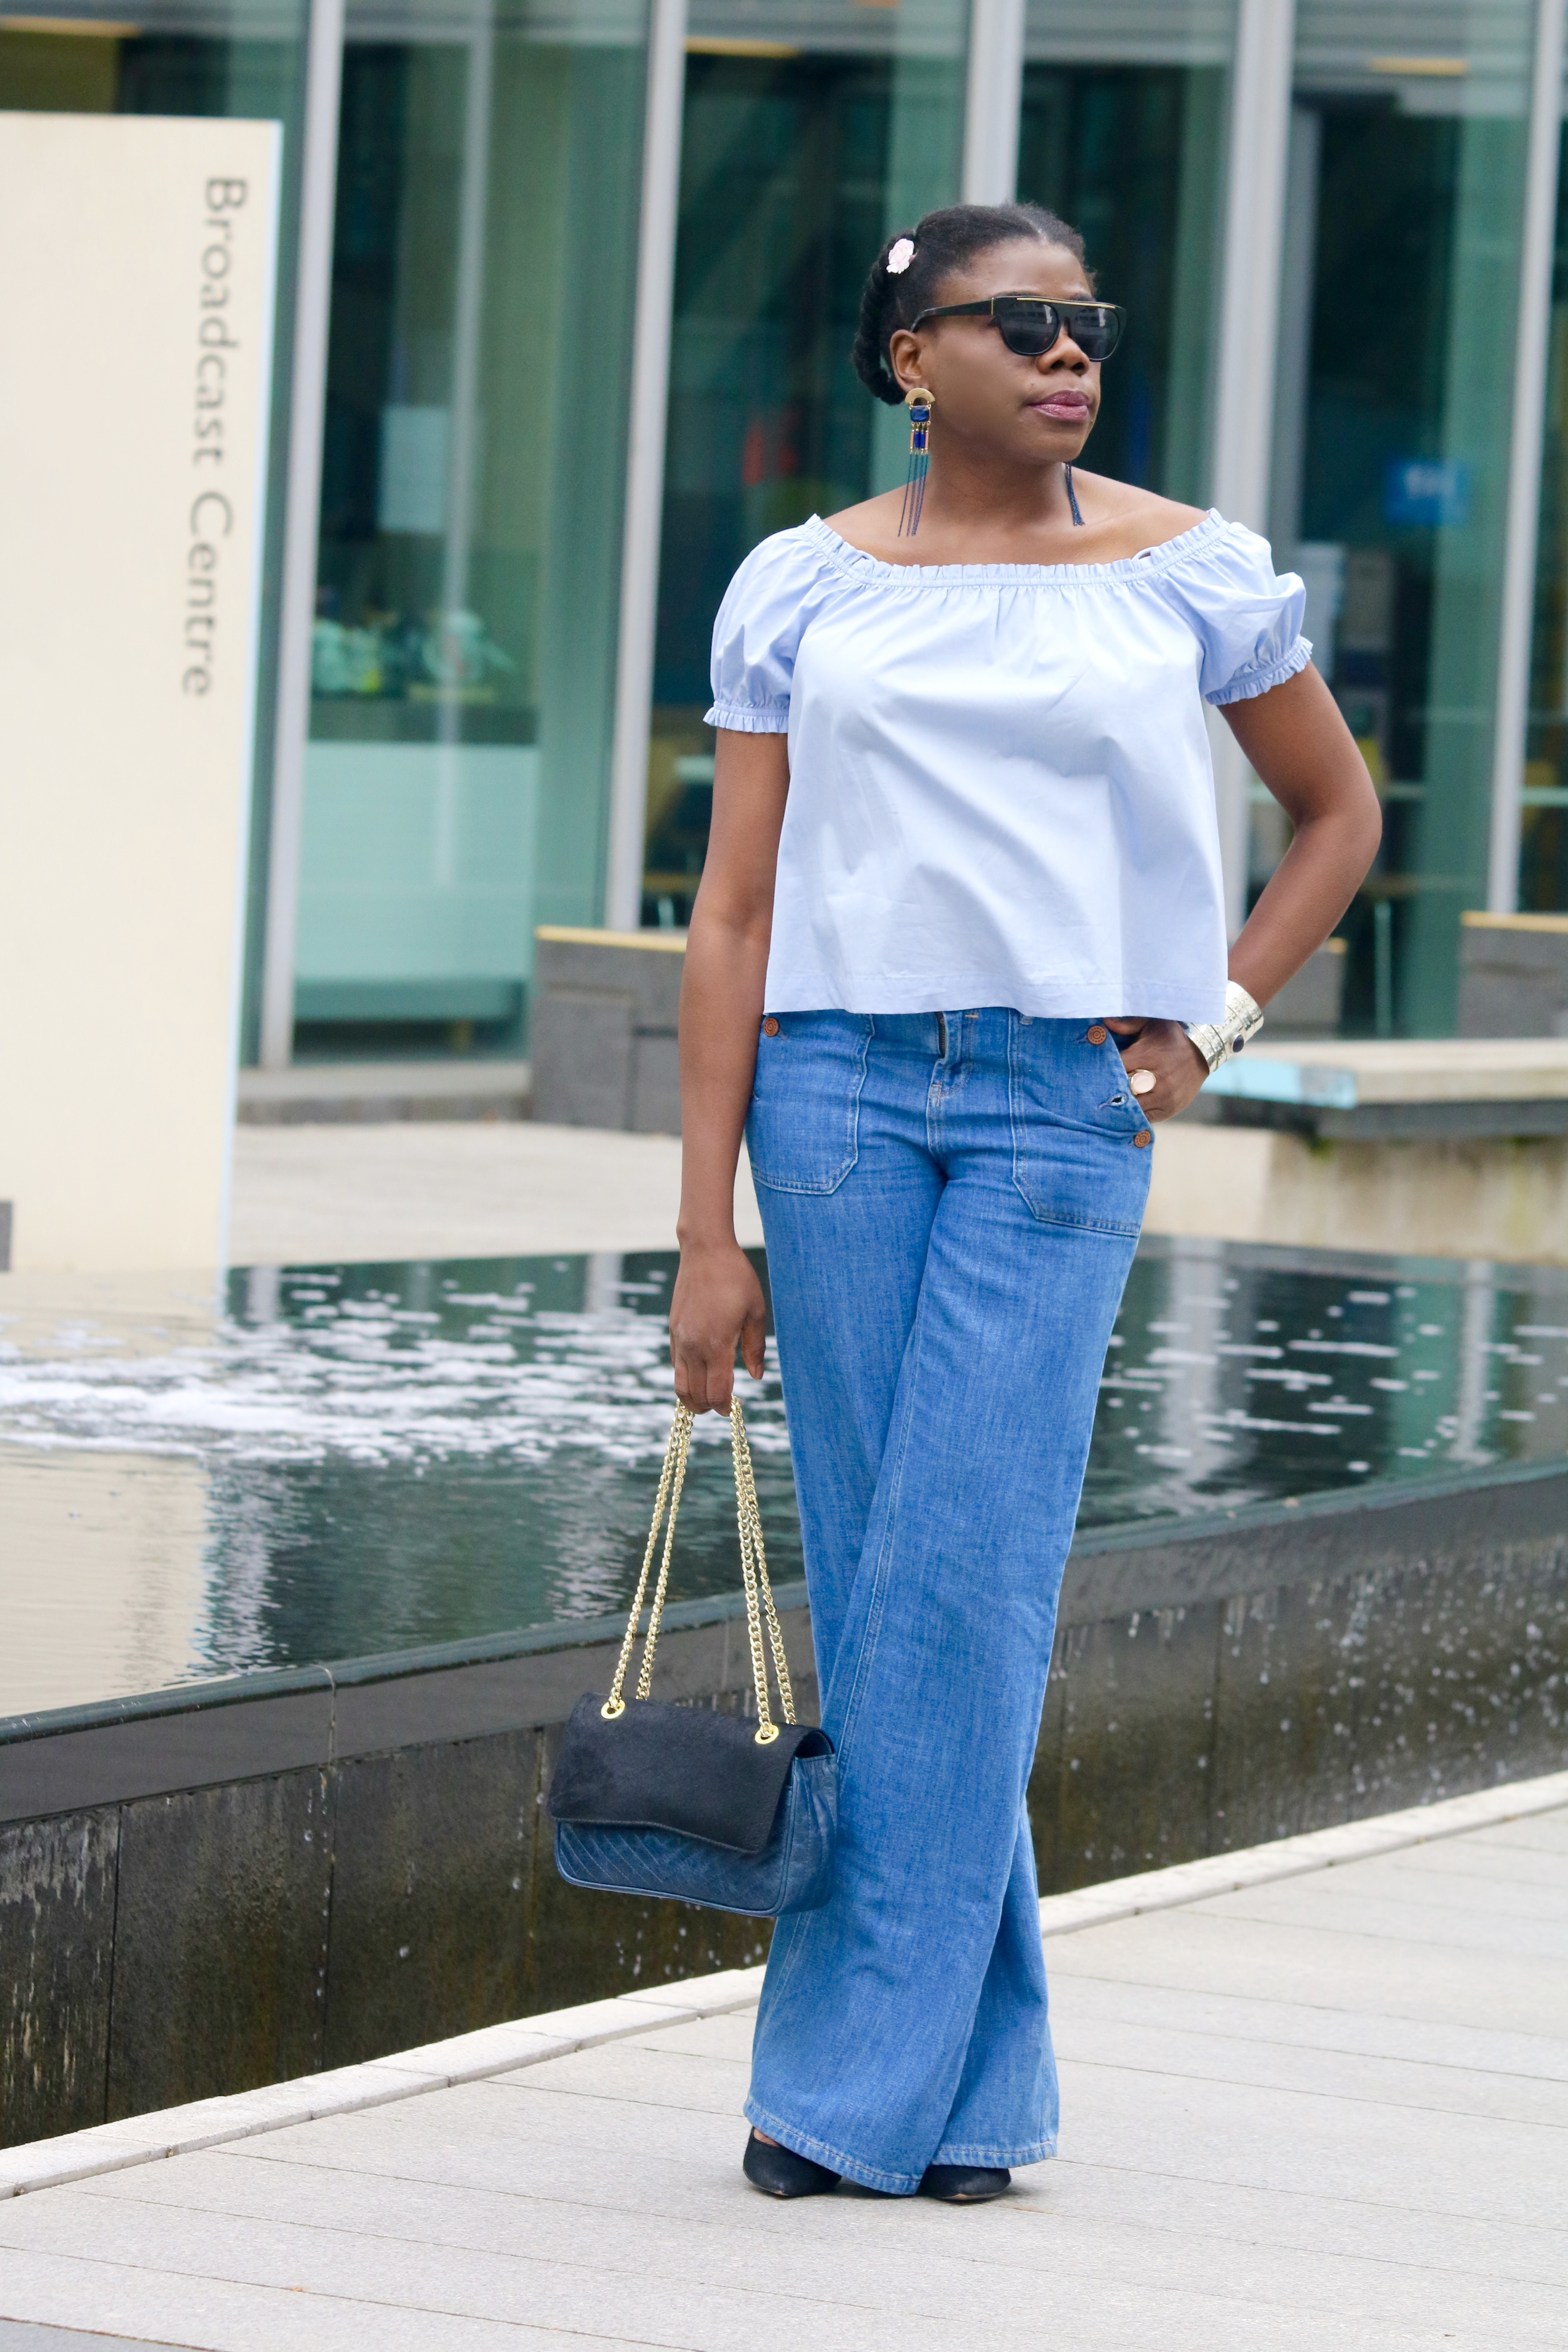 Cameroon Blog, Naija Blogs, Camer Blogs, Best Fashion Blogs 2016, Beautiful Dresses & Shoes, Mammypi Fashion Blog, Cameroonian Fashion Blogger, Best Cameroon Fashion Blog 2016, Kinky curly hair, Afro Hair, Curly Hair, Faux Locs, Natural Hair, Monique Koumate, Goretti Woman Movie Premiere, Cameroon Actors, Cameroon Actress, Best Cameroon Actors, Cameroonian actors, Cameroon Movie Industry, Cameroonian Movie Industry, Cameroon Designers, Cameroonian Fashion Designers, How old is Paul Biya, Who Is Paul Biya, President Of Cameroon, How Many Children Has President Paul Biya got, African Presidents,Vanessa Klat